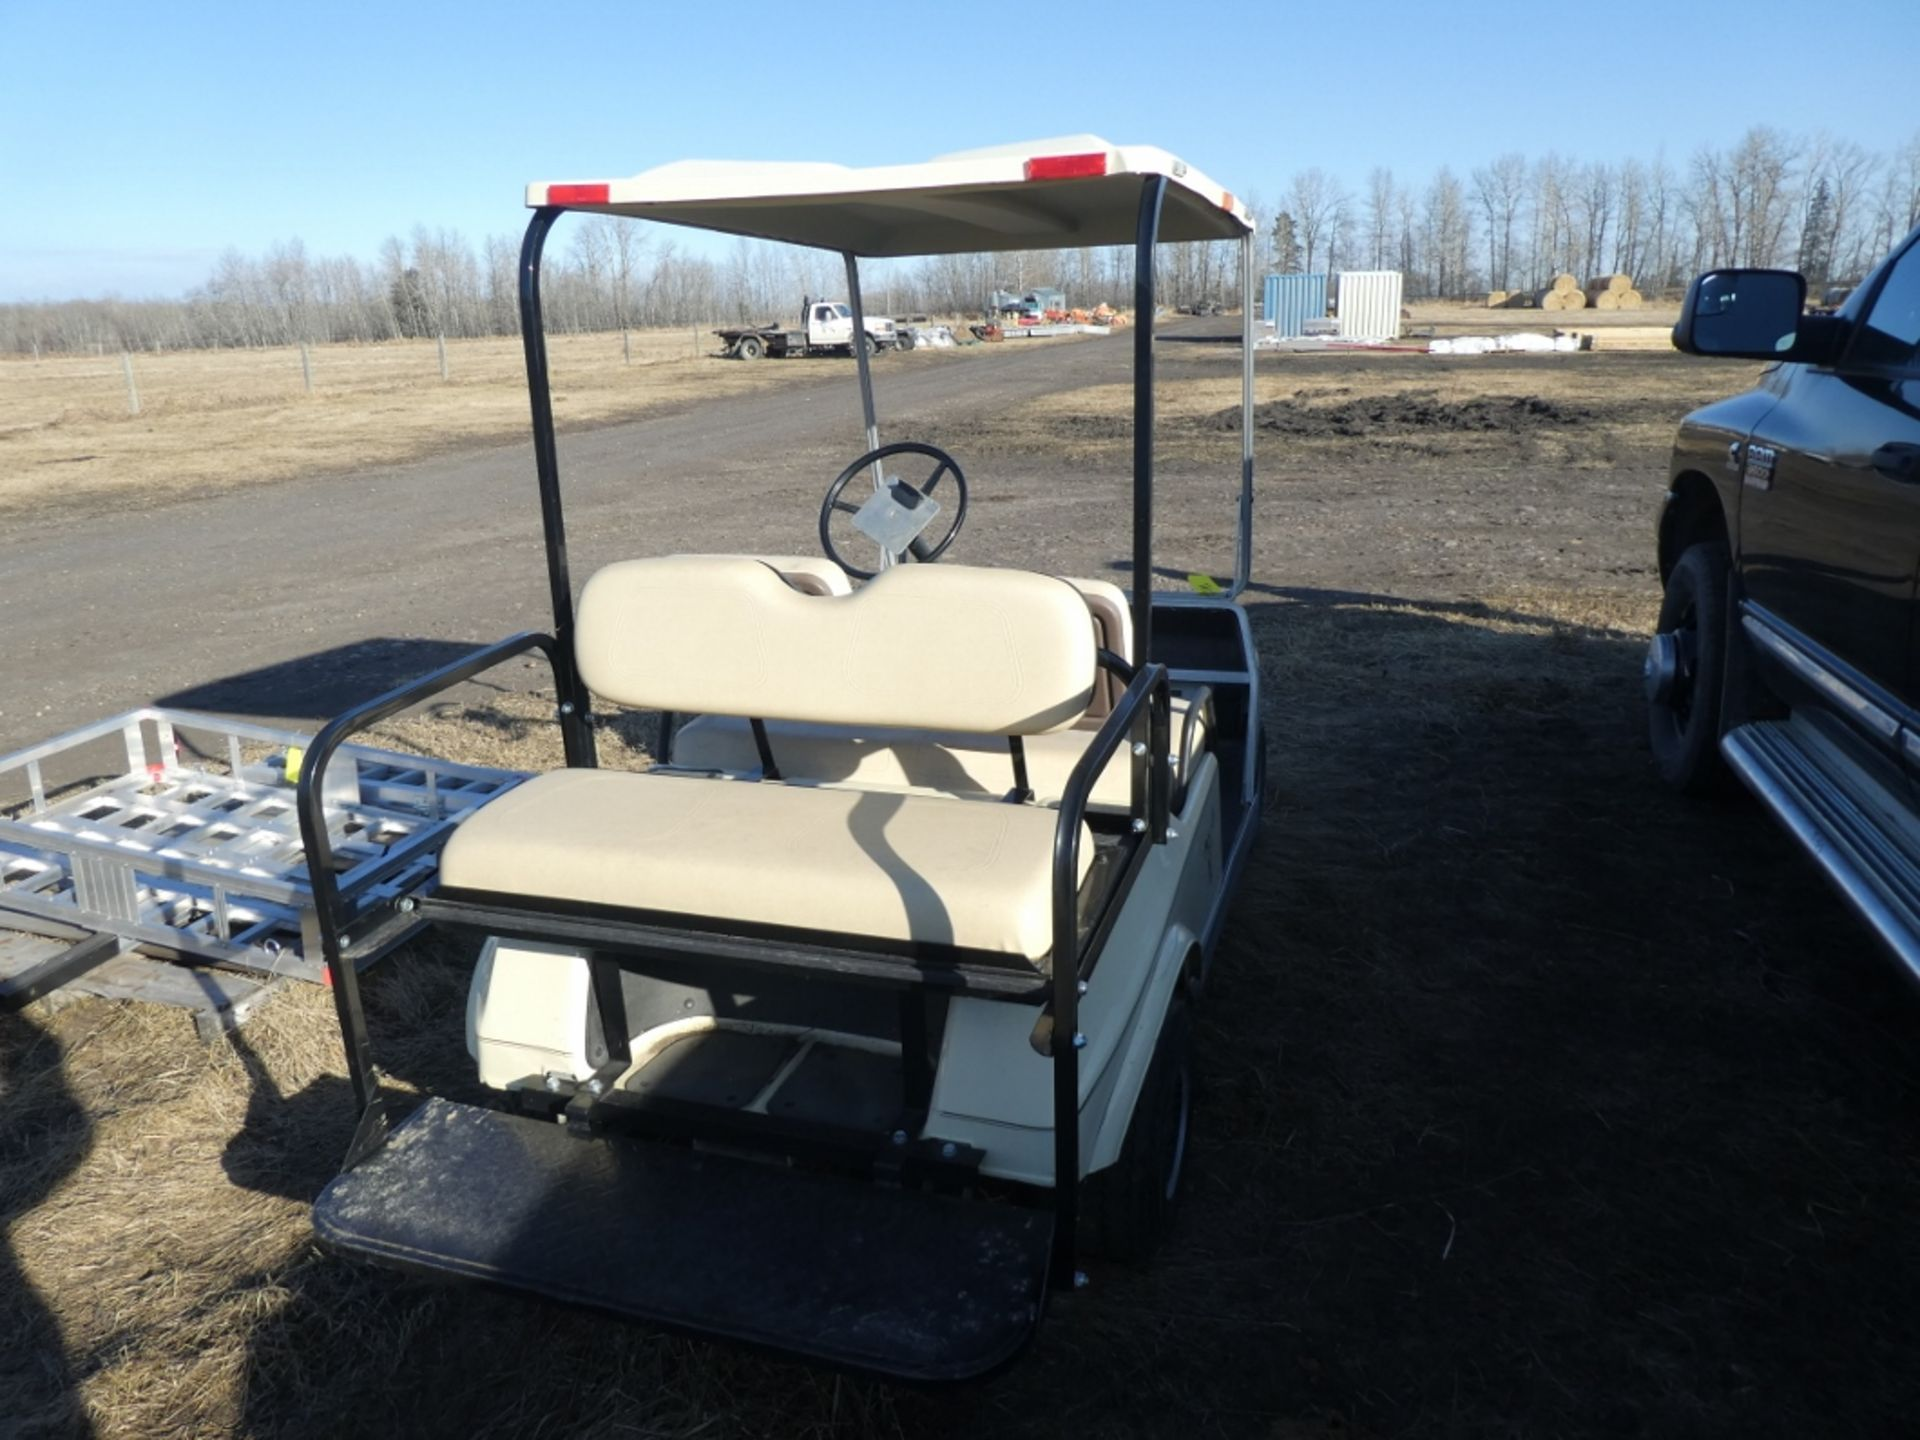 CLUB CAR GAS POWERED GOLF CART S/N AG9132254635 W/NEW BRAKES, BATTERY, REAR SEAT - Image 5 of 6